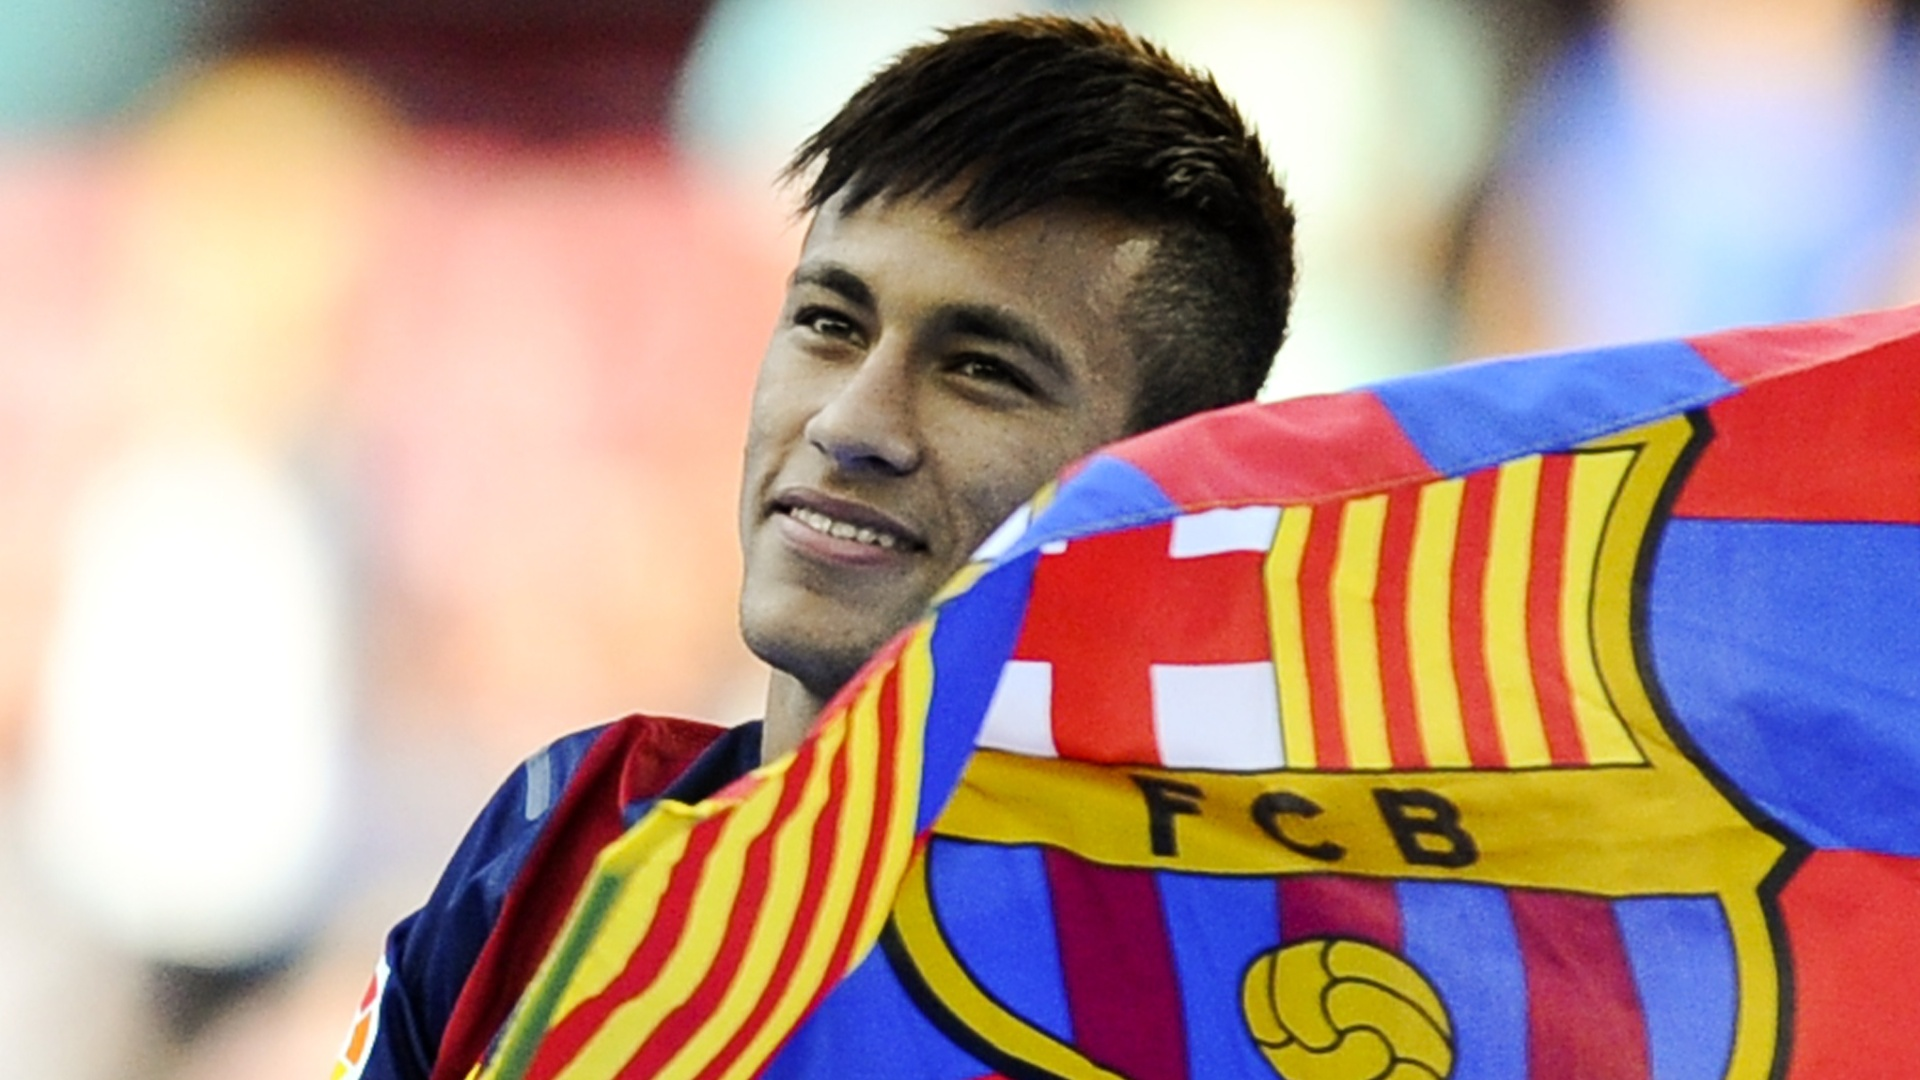 03jun2013---com-bandeira-do-barcelona-neymar